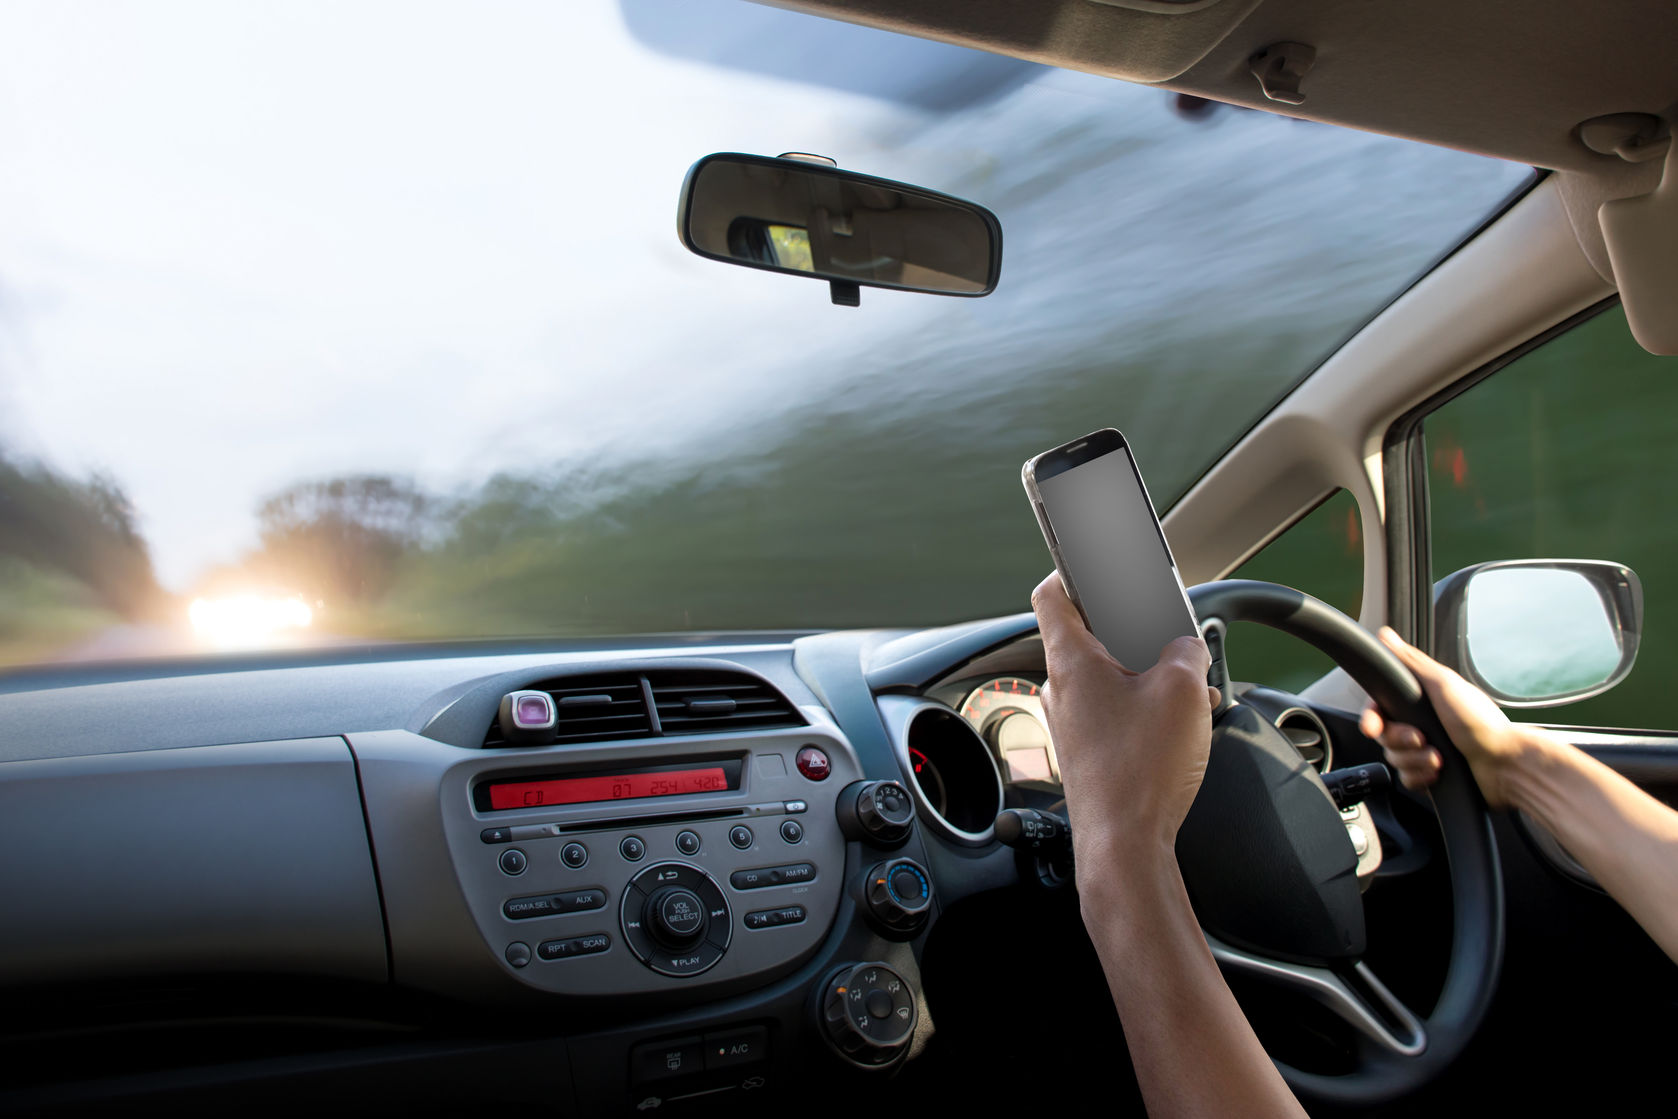 Cell phones distract from driving